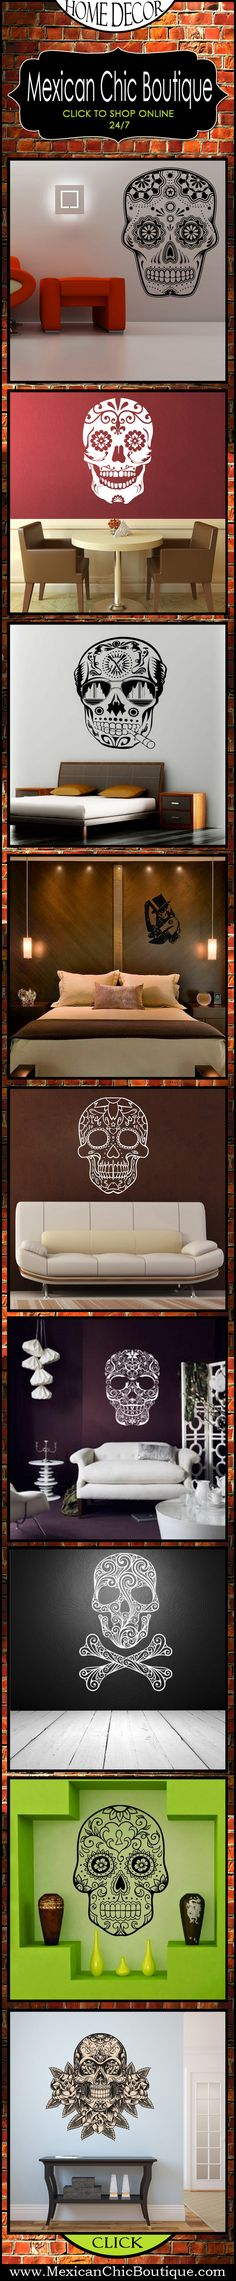 Mexican Decorations | Home Decorating Accessories | Home Decor | Mexican Art | Mexican Folk Art | SHOP NOW ♥ http://www.mexicanchicboutique.com/p/skulls.html